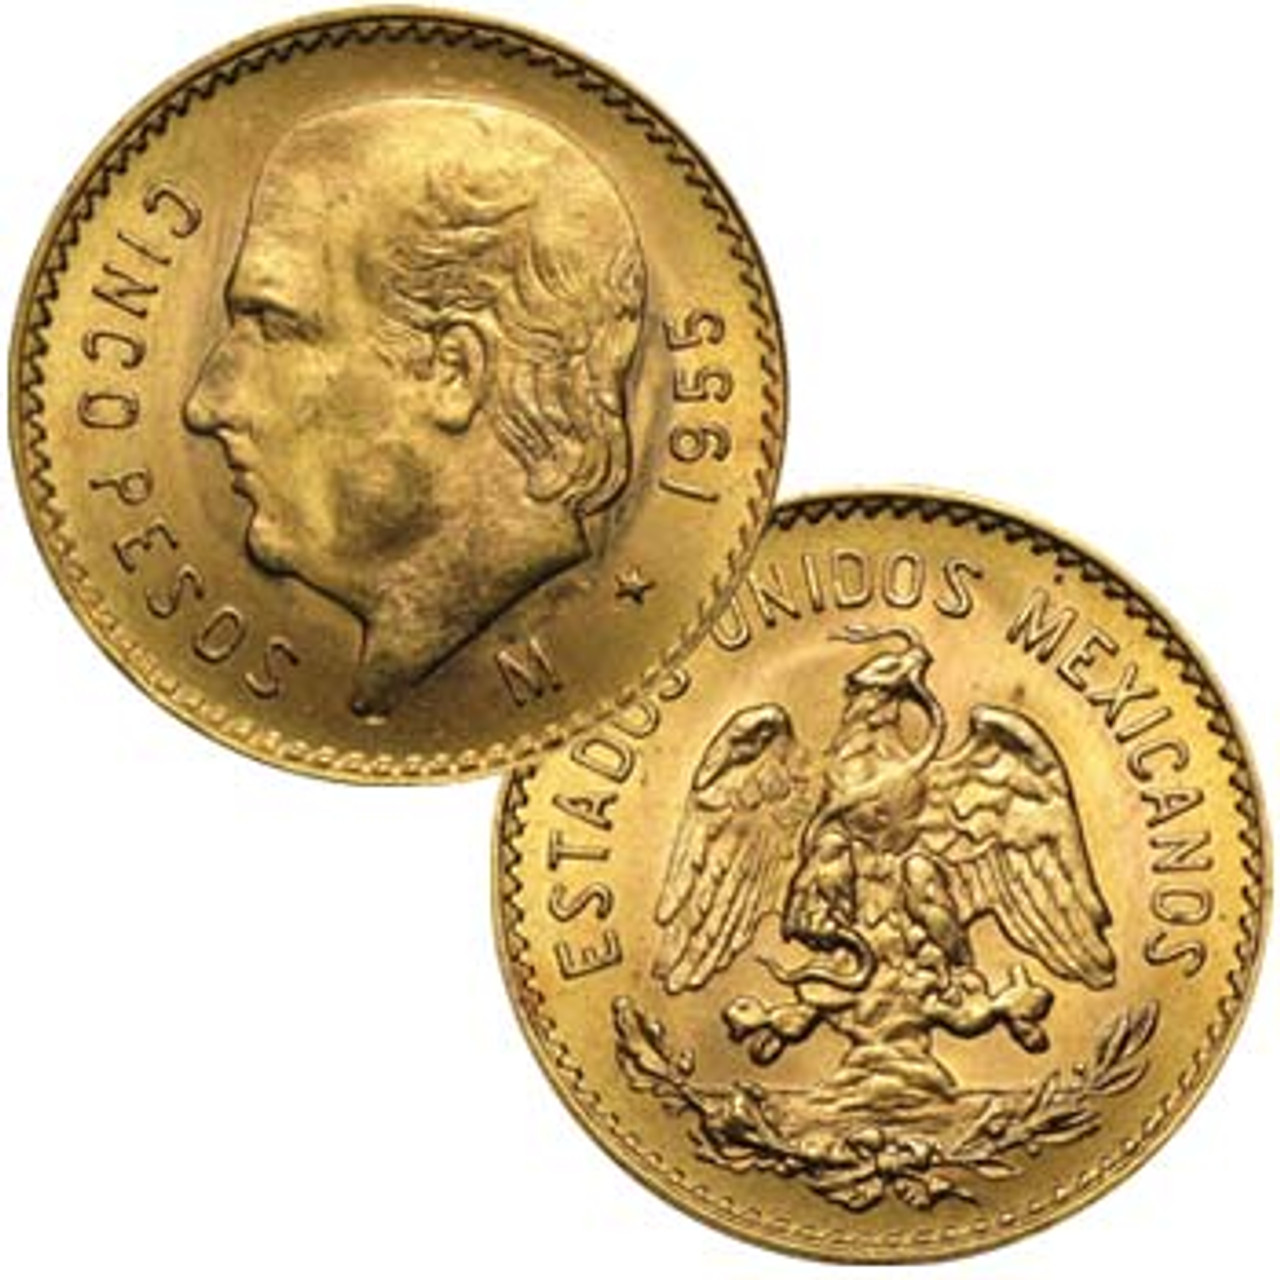 Mexico 1905-1959 Hidalgo Gold 5 Peso About Uncirculated Image 1